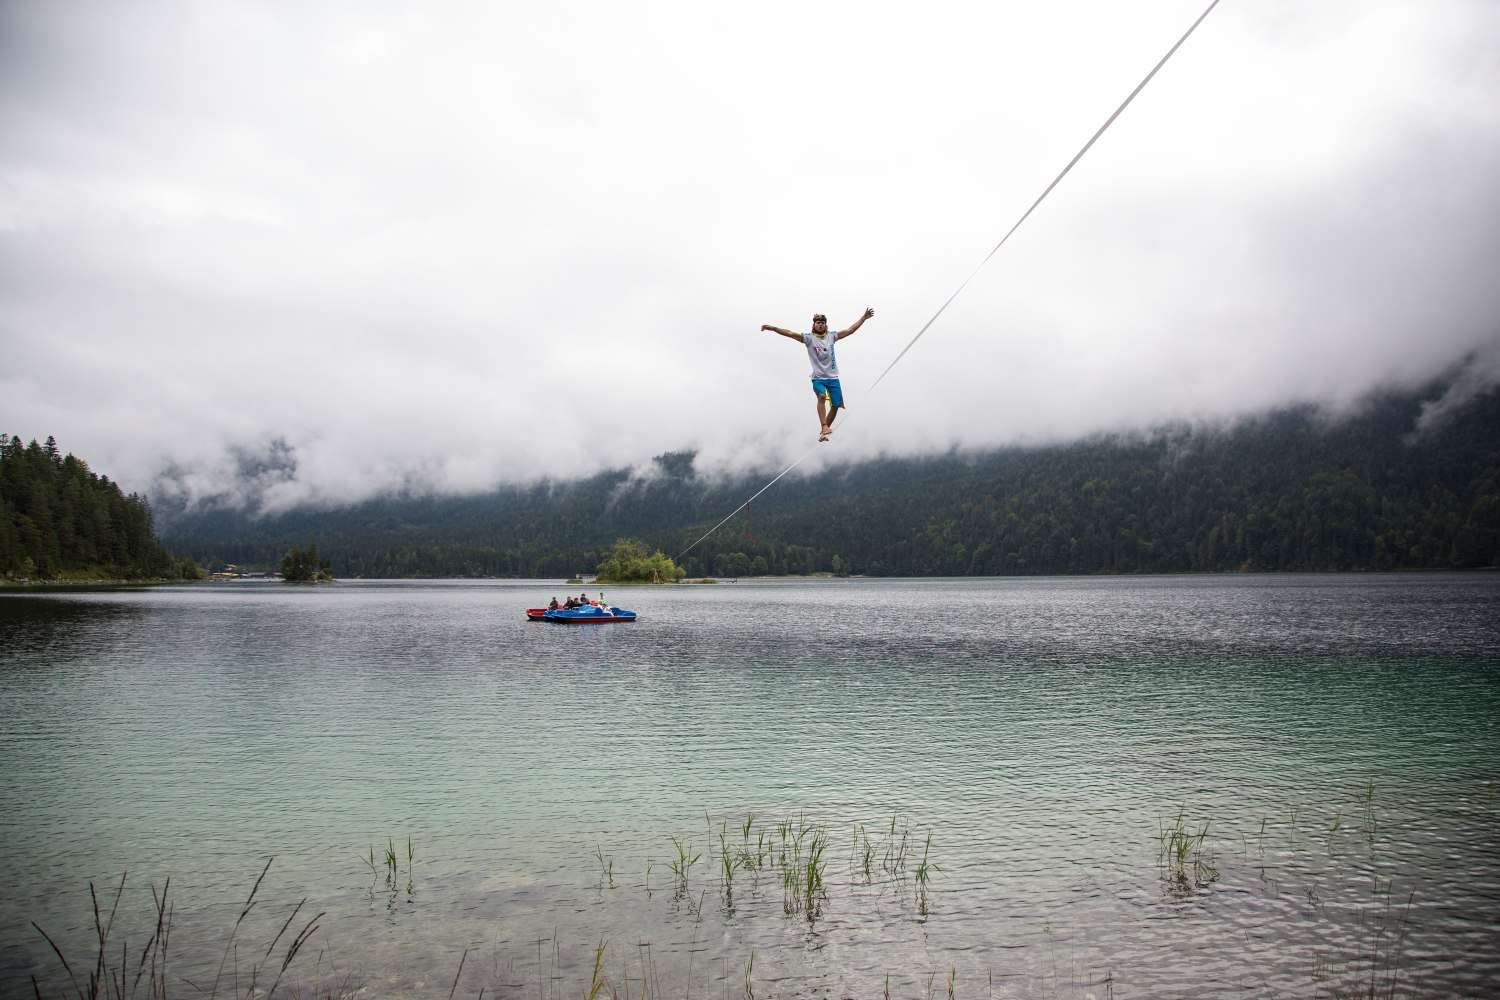 Eibsee-slackline-world-record (12).jpg